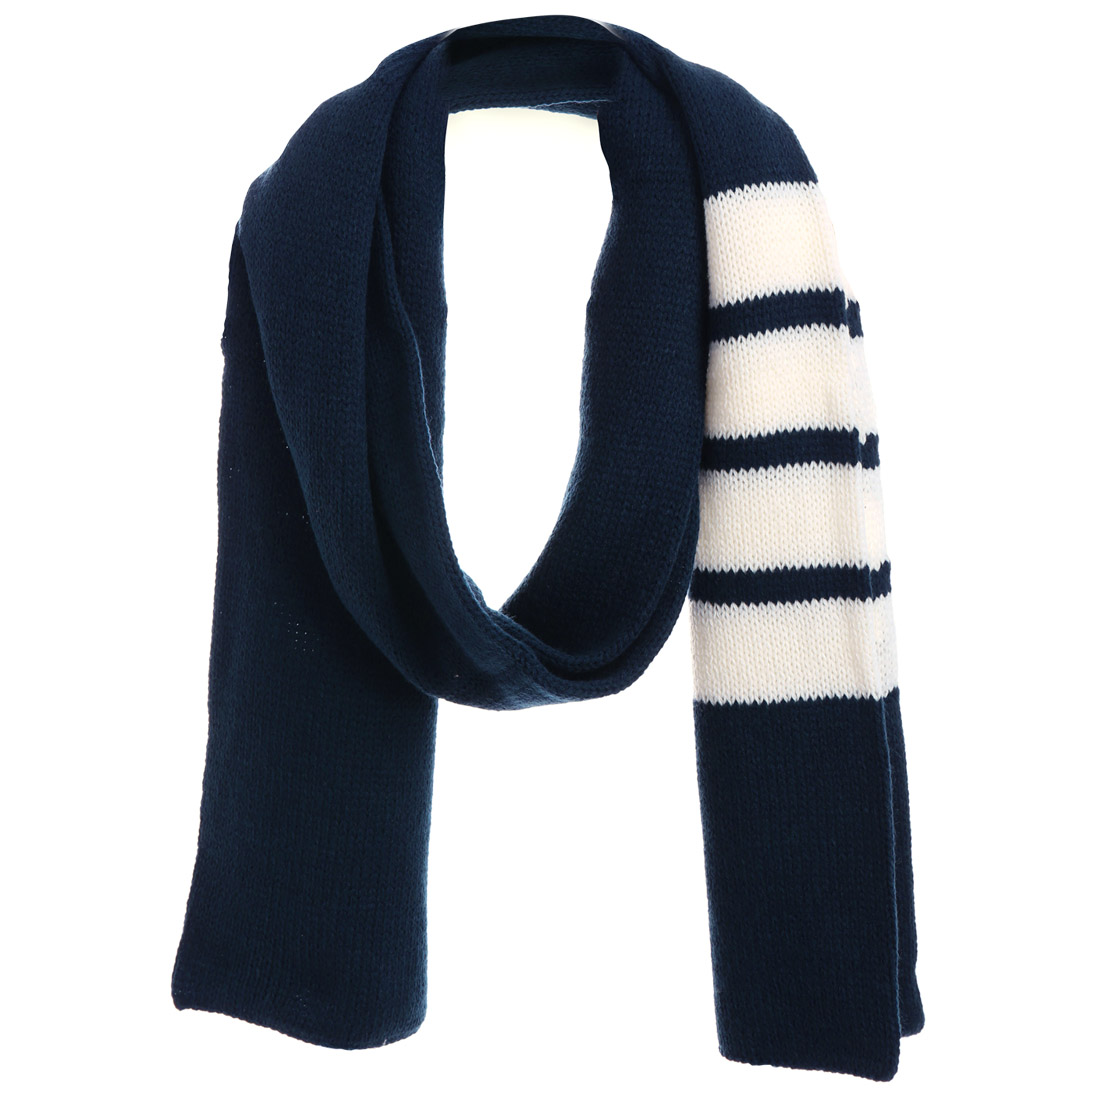 Men Warm Winter Stretchy Navy Blue White Knitted Scarf